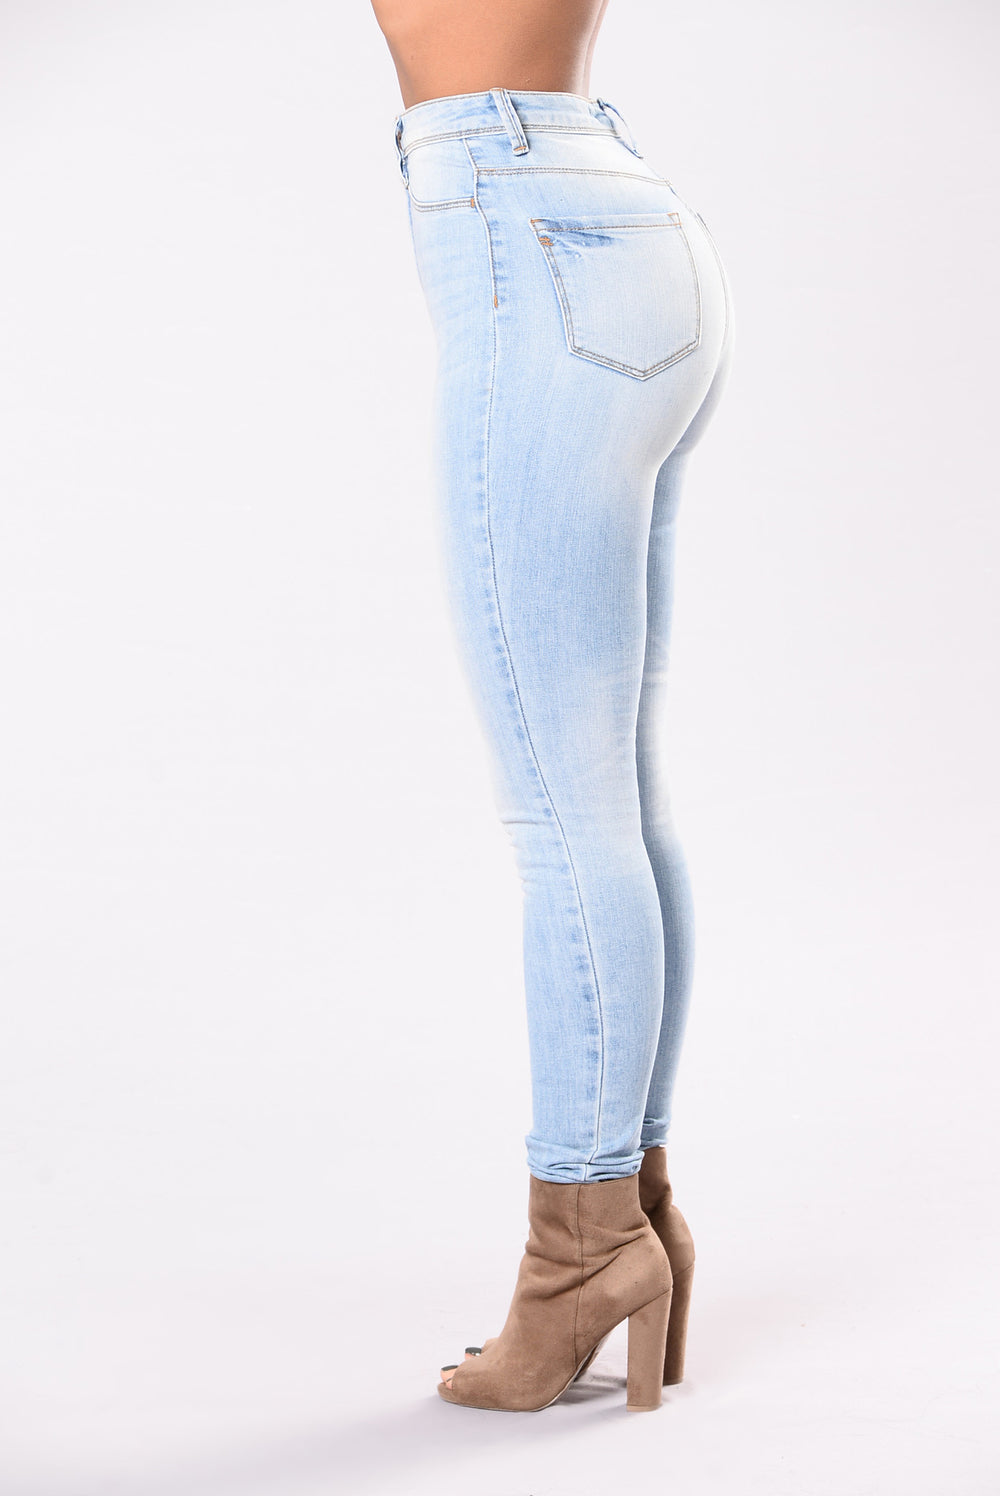 Retro Culture Jeans - Light